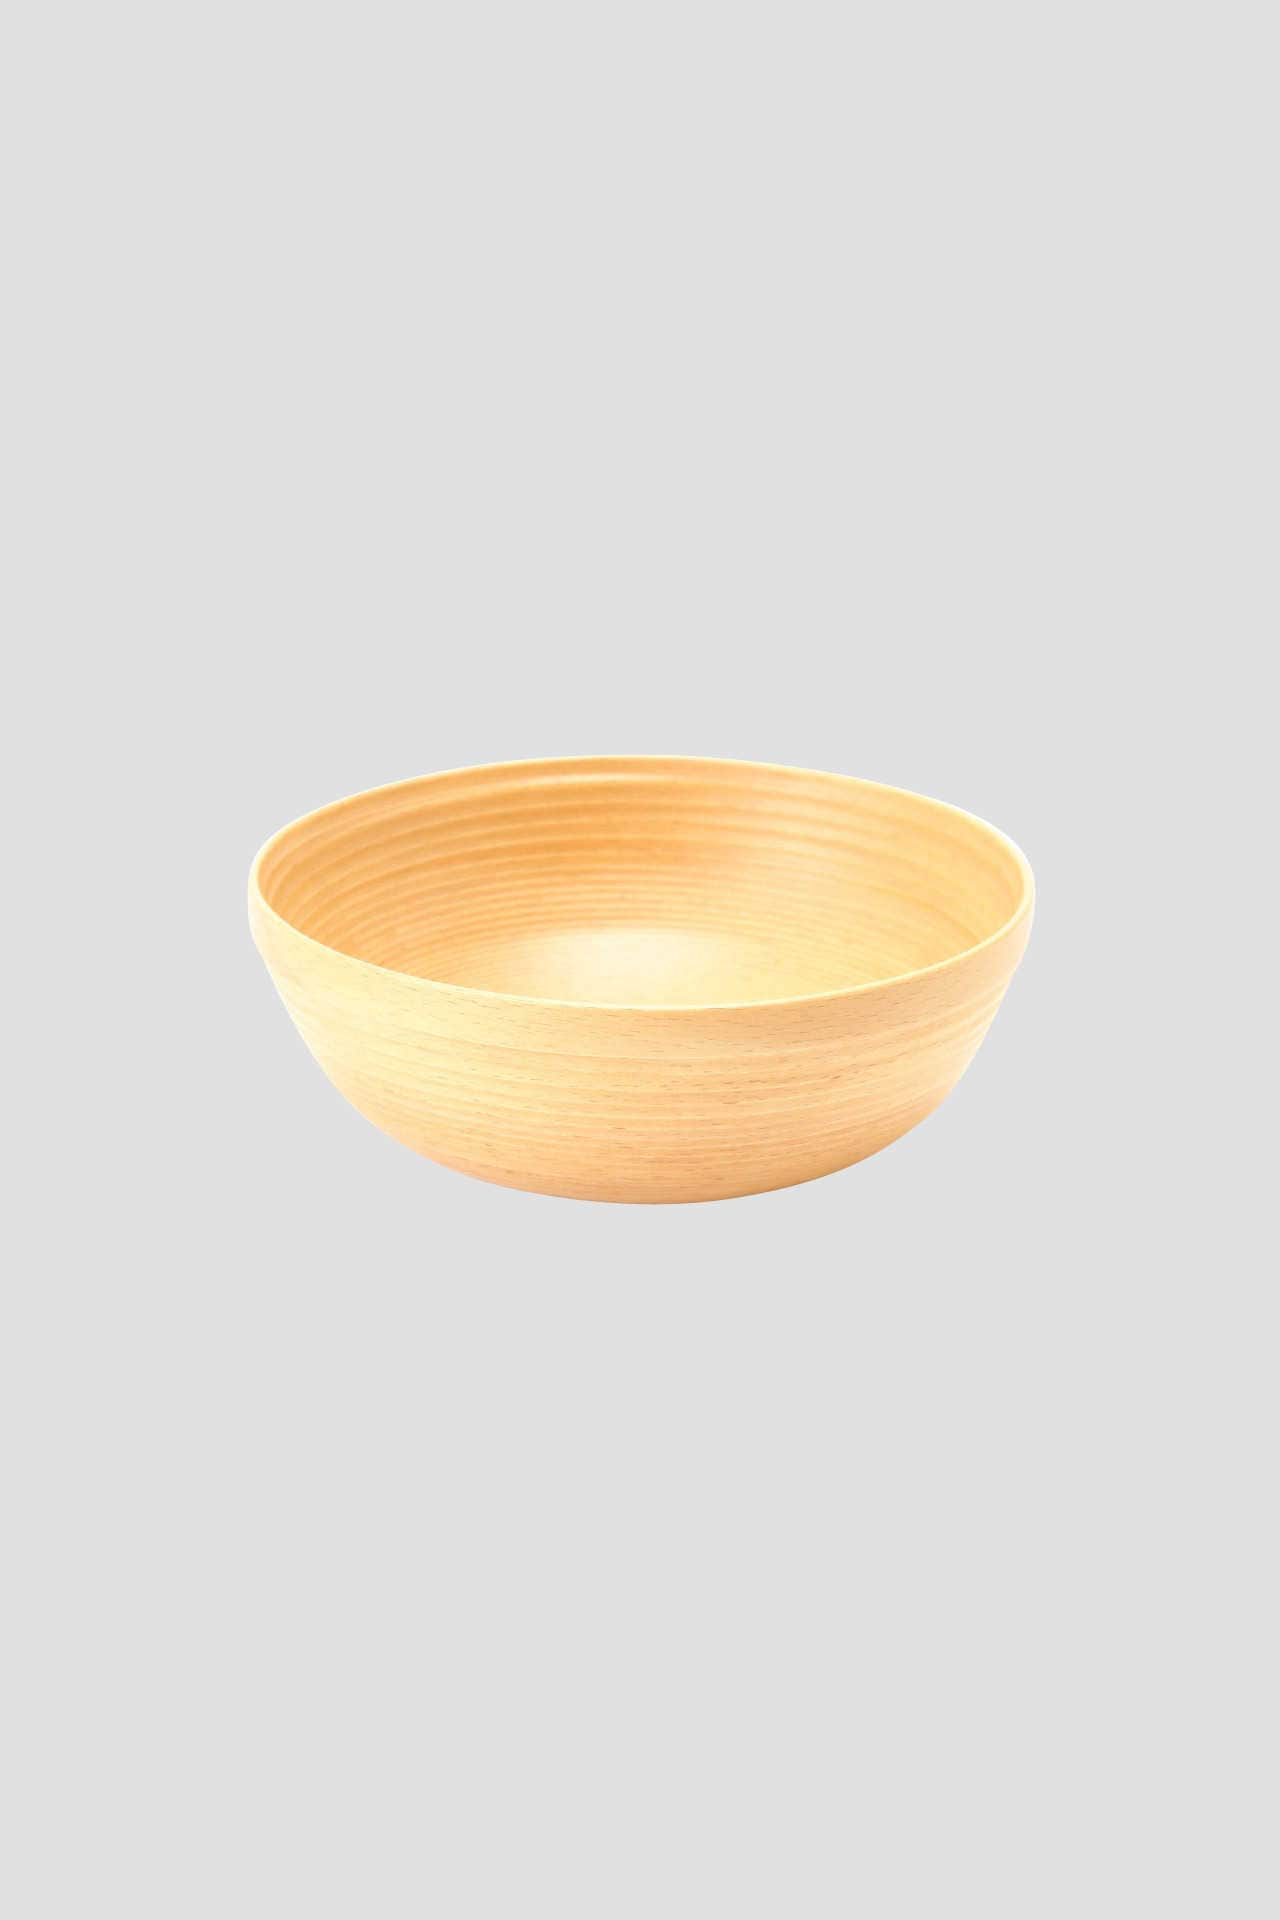 BUNACO ORIGINAL BOWL SMALL